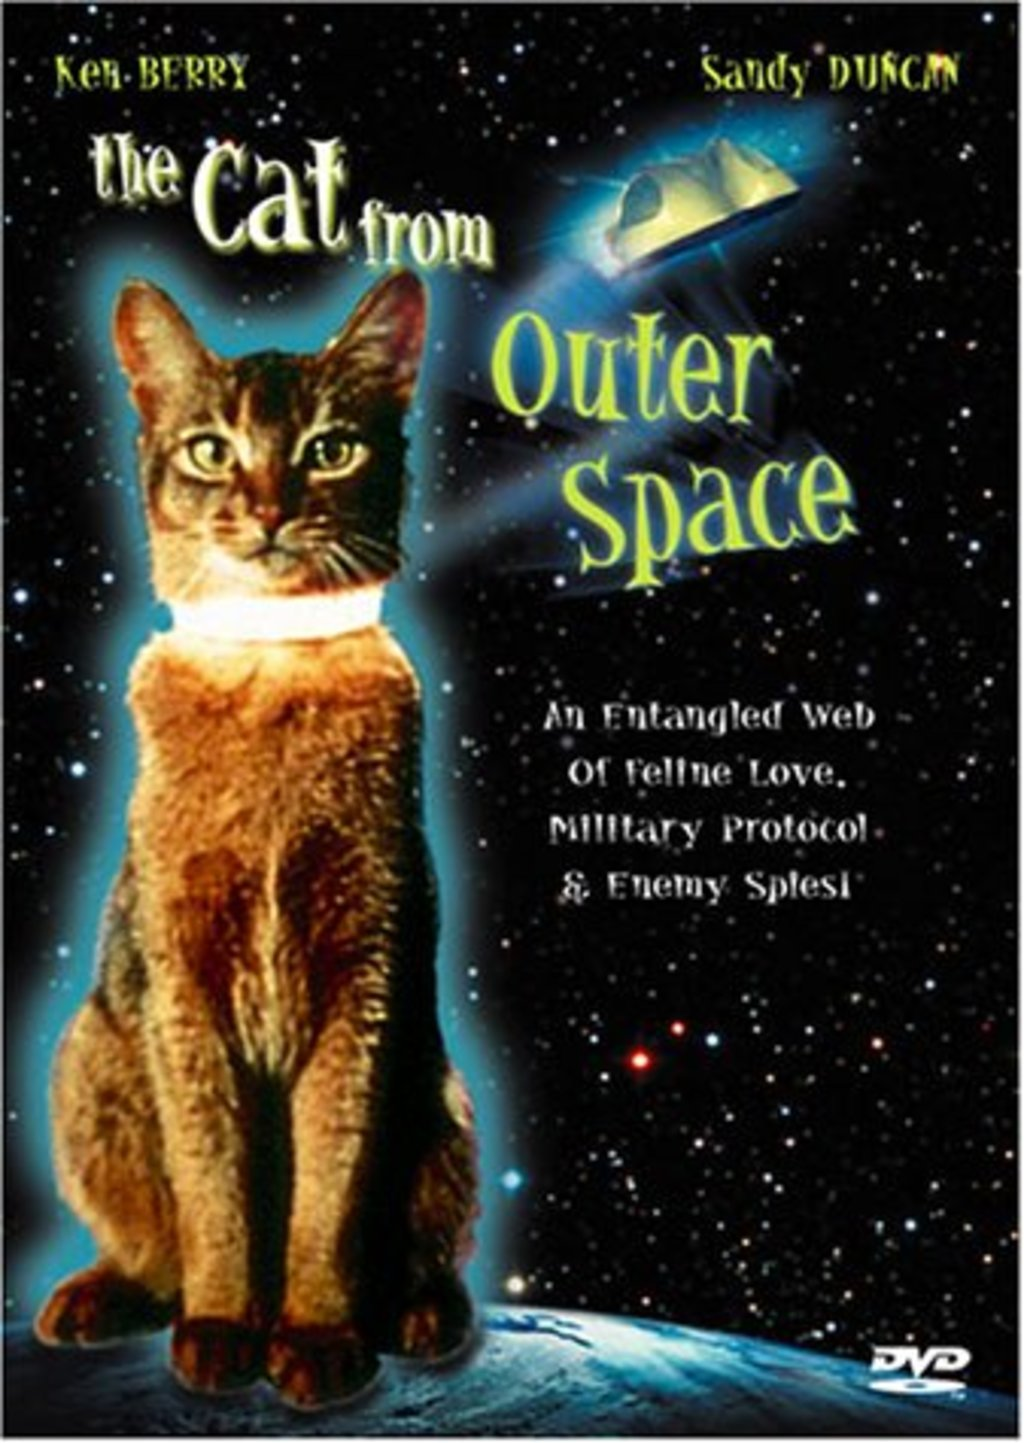 Watch the cat from outer space on netflix today for Outer space movies